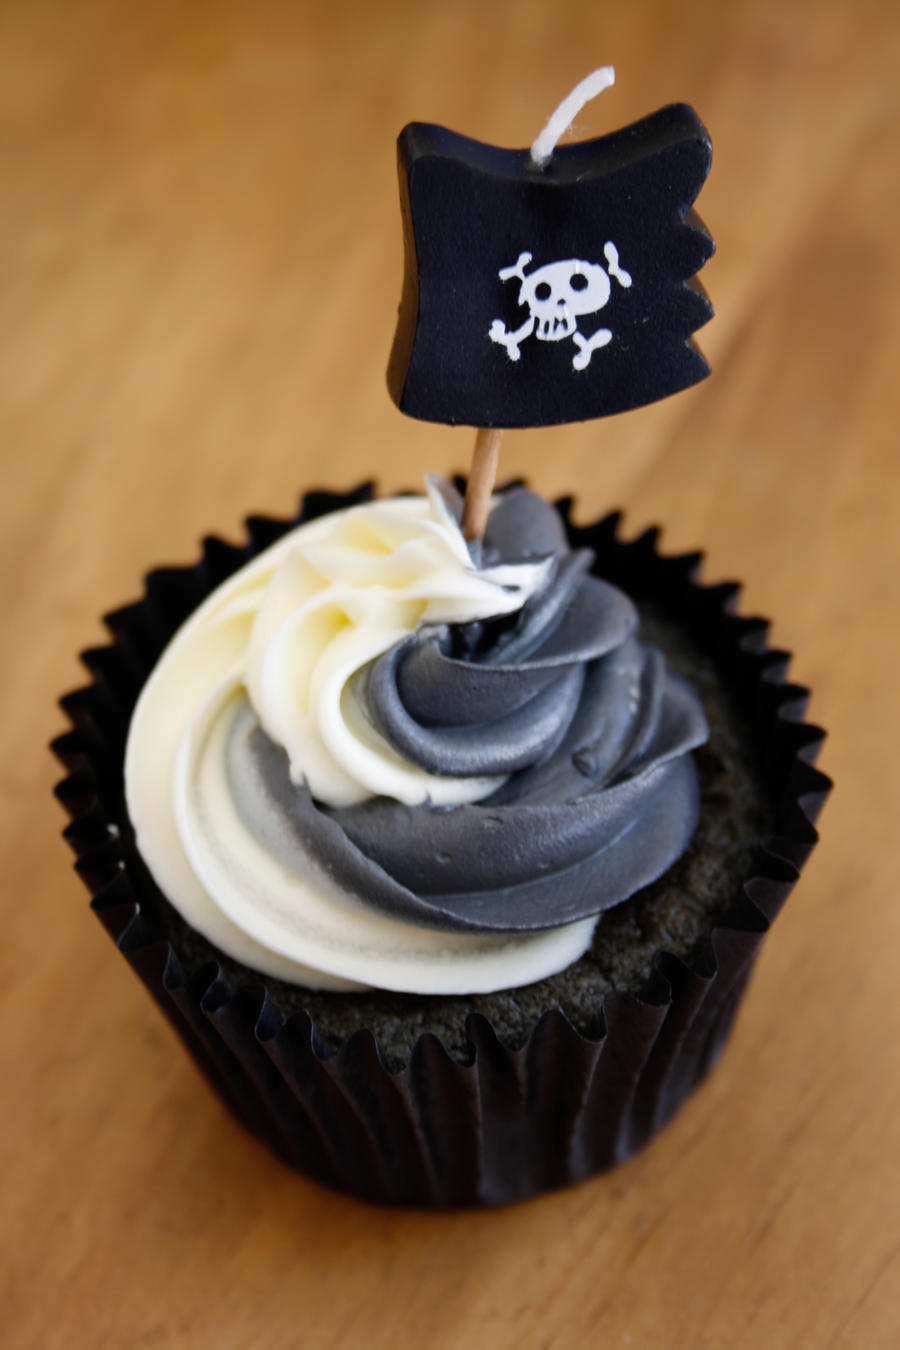 Pirate Cupcake by behindthesofa